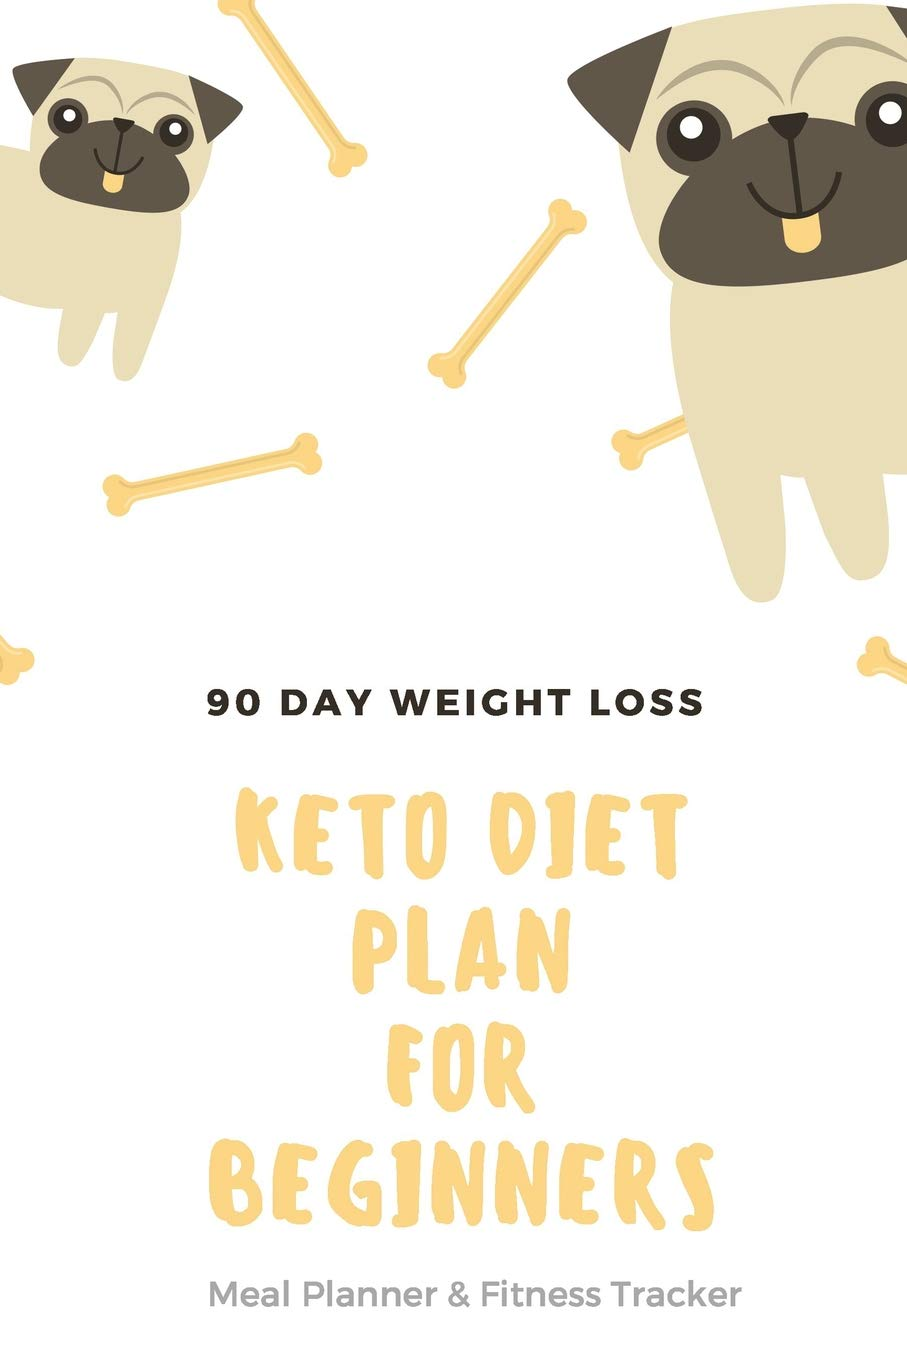 Keto Diet Plan For Beginners 90 Day Weight Loss Keto Daily Meal Planner For Bodybuilding Health Gym Workout Fitness Tracker Exercise Diary Skinnytaste Planner Cute Dog Design Shatley Jennifer 9781073161454 Amazon Com Books